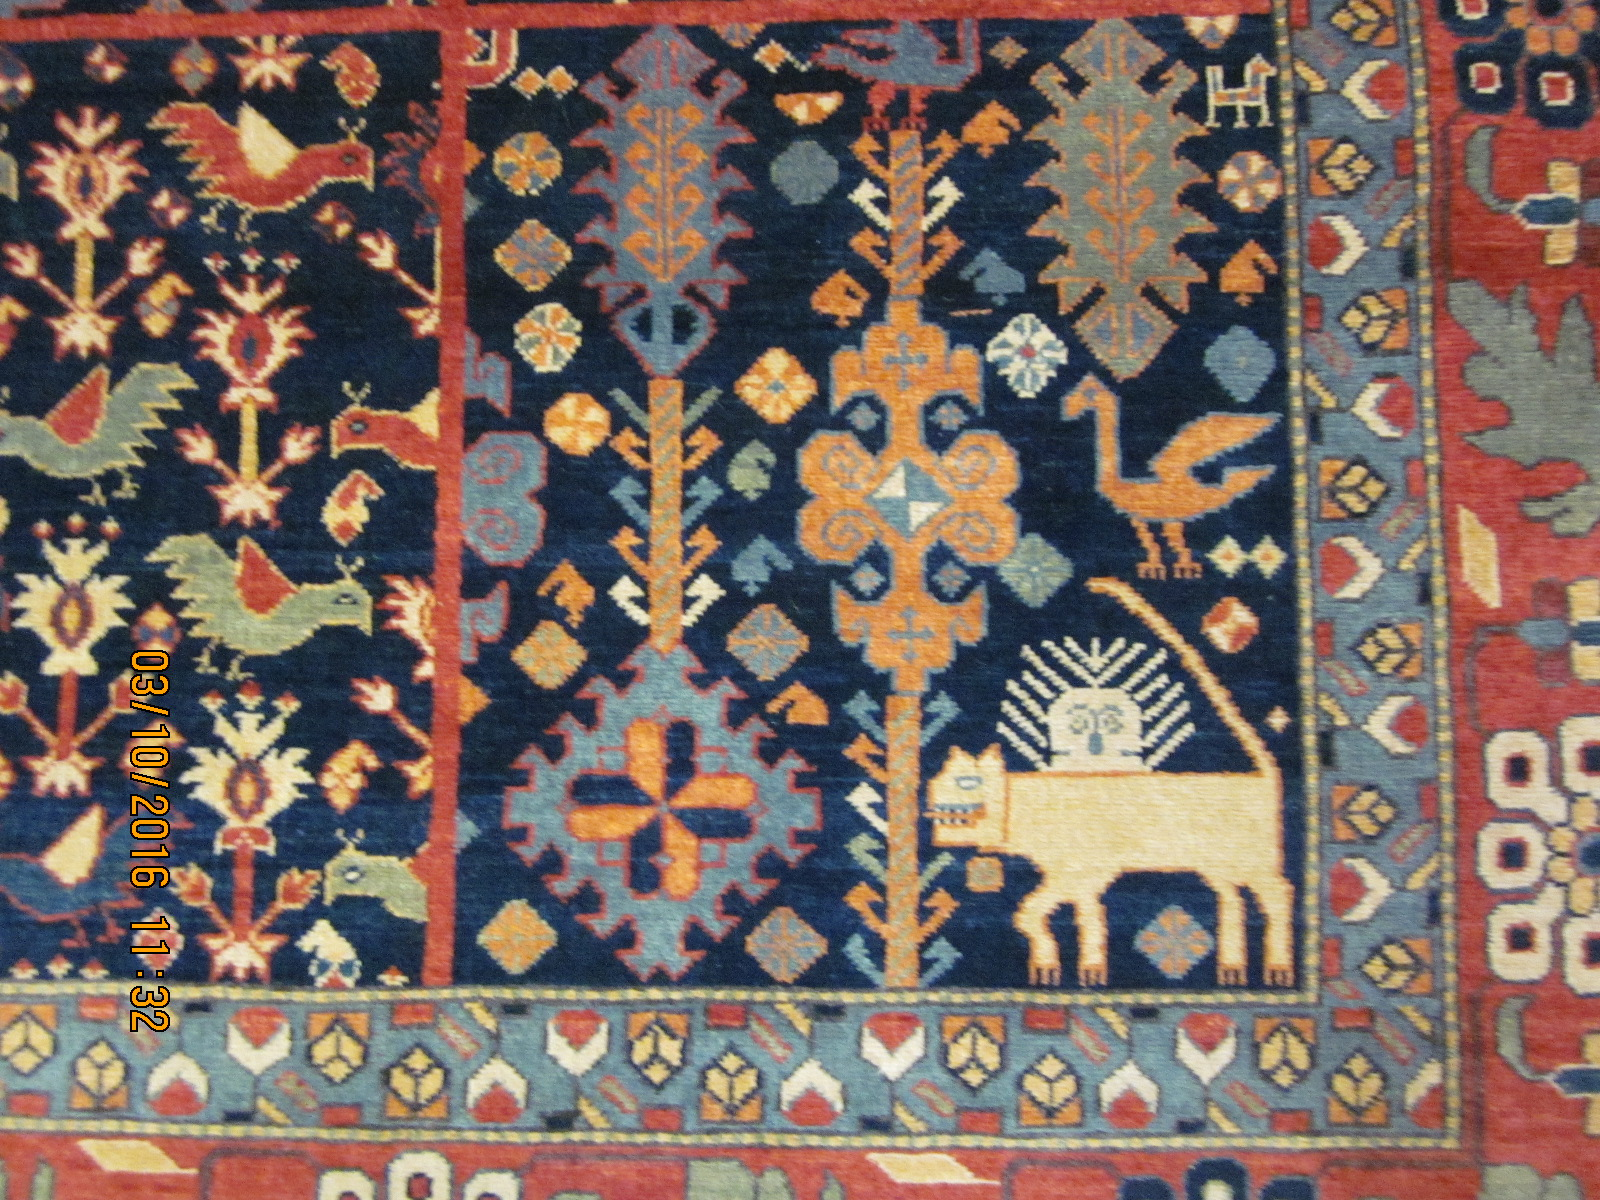 video of afghan rugs in persian tribal designs hereu0027s a clue the first three photos here are of a small piece in a qashqai design